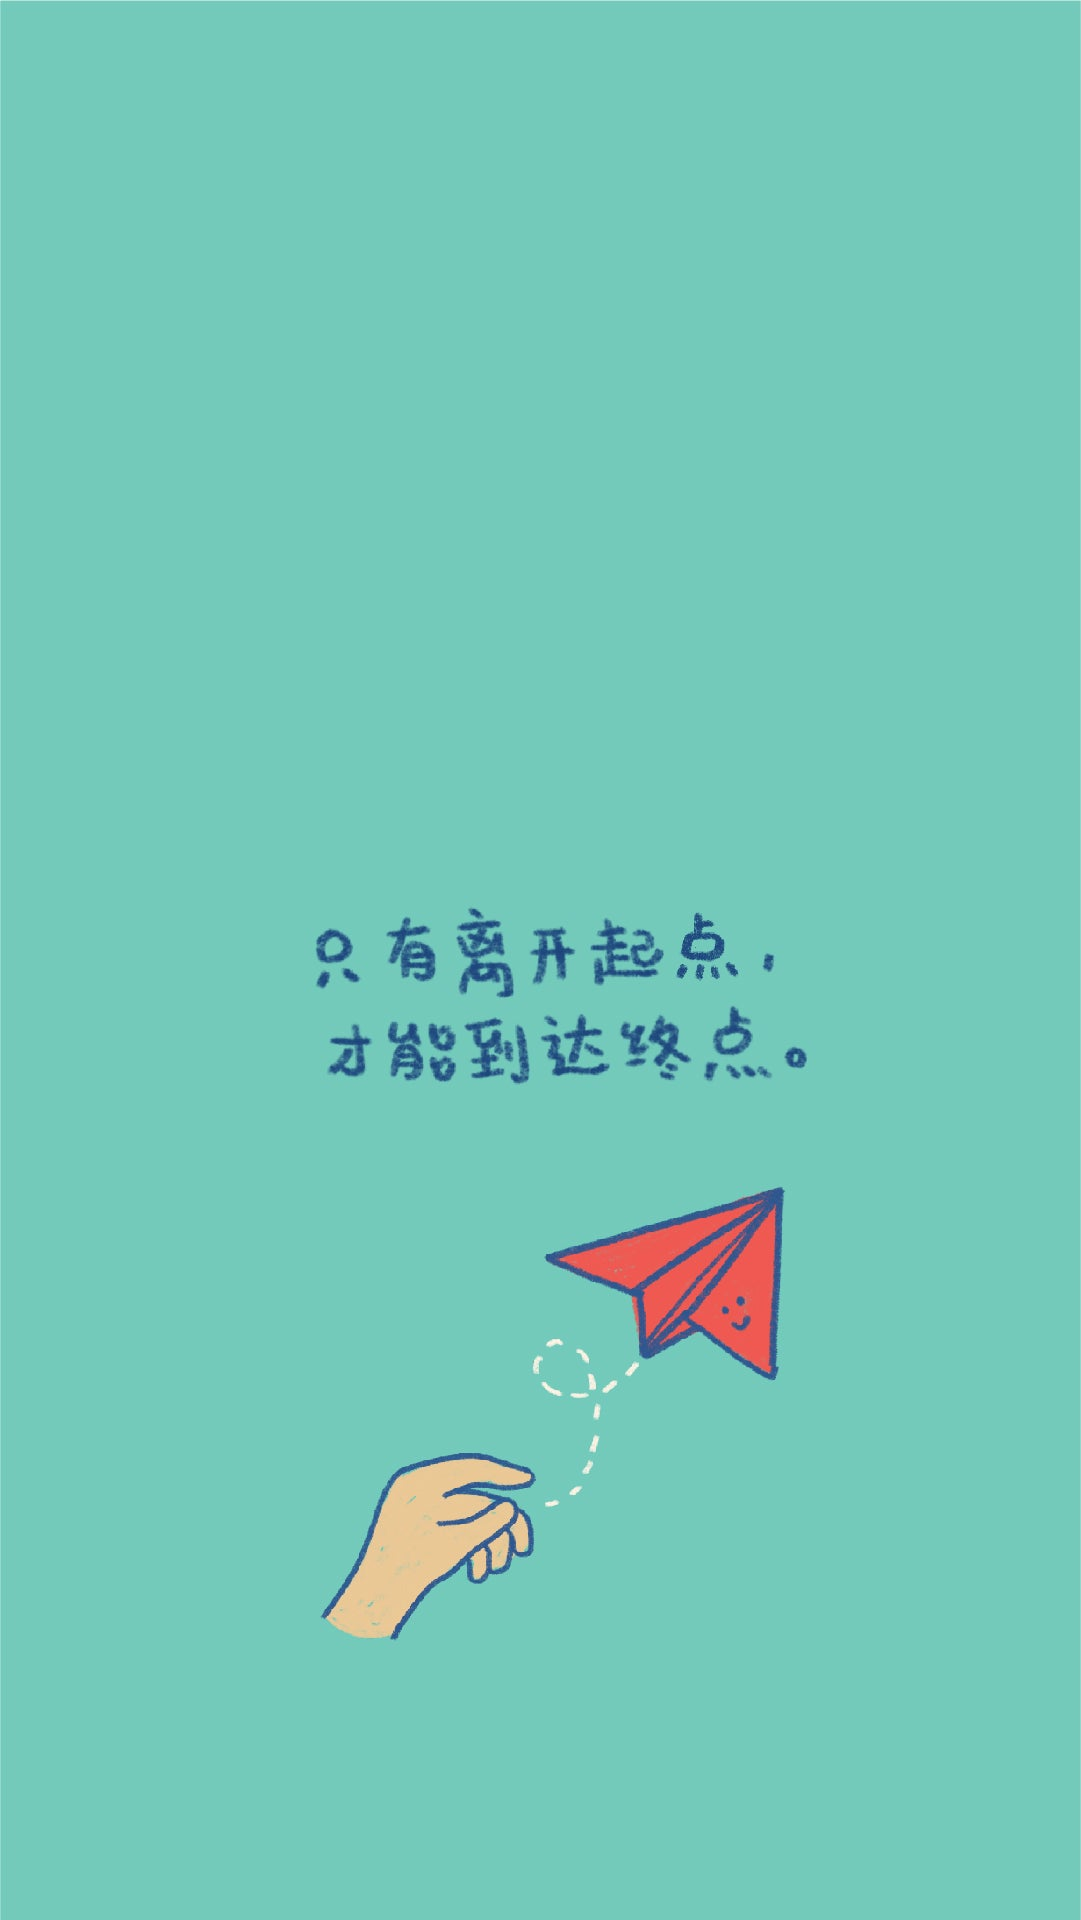 phone wallpaper of a digital illustration of a chinese verse about leaving the starting line in order to finish with a hand throwing a paper aeroplane drawing